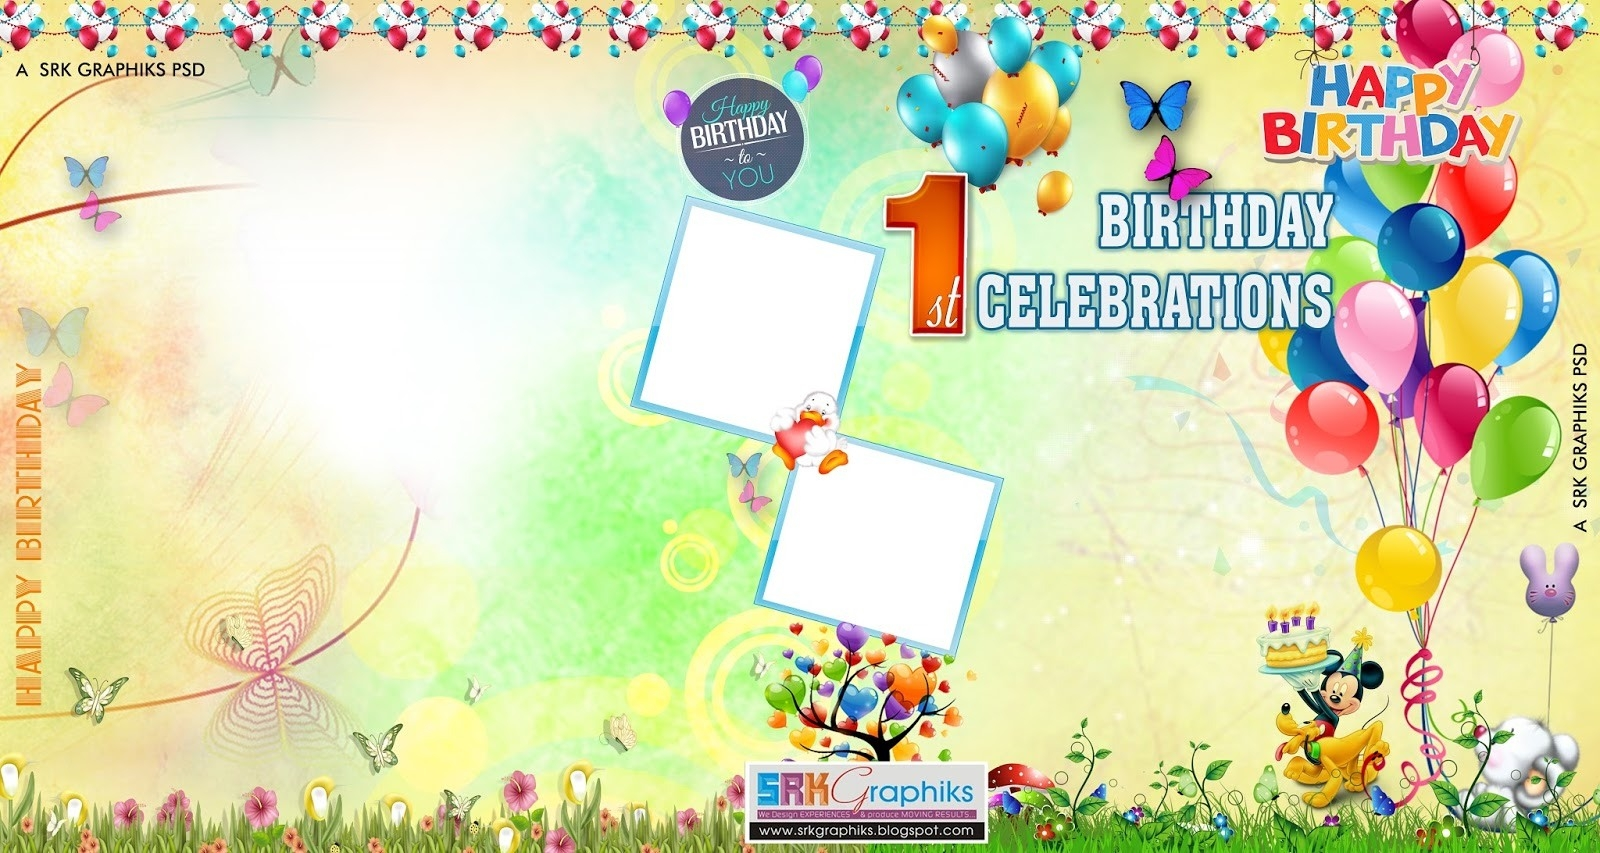 1st birthday banner background design ; birthday-flex-banner-design-psd-template-free-downloads-srk-graphics-for-birthday-flex-banner-background-design